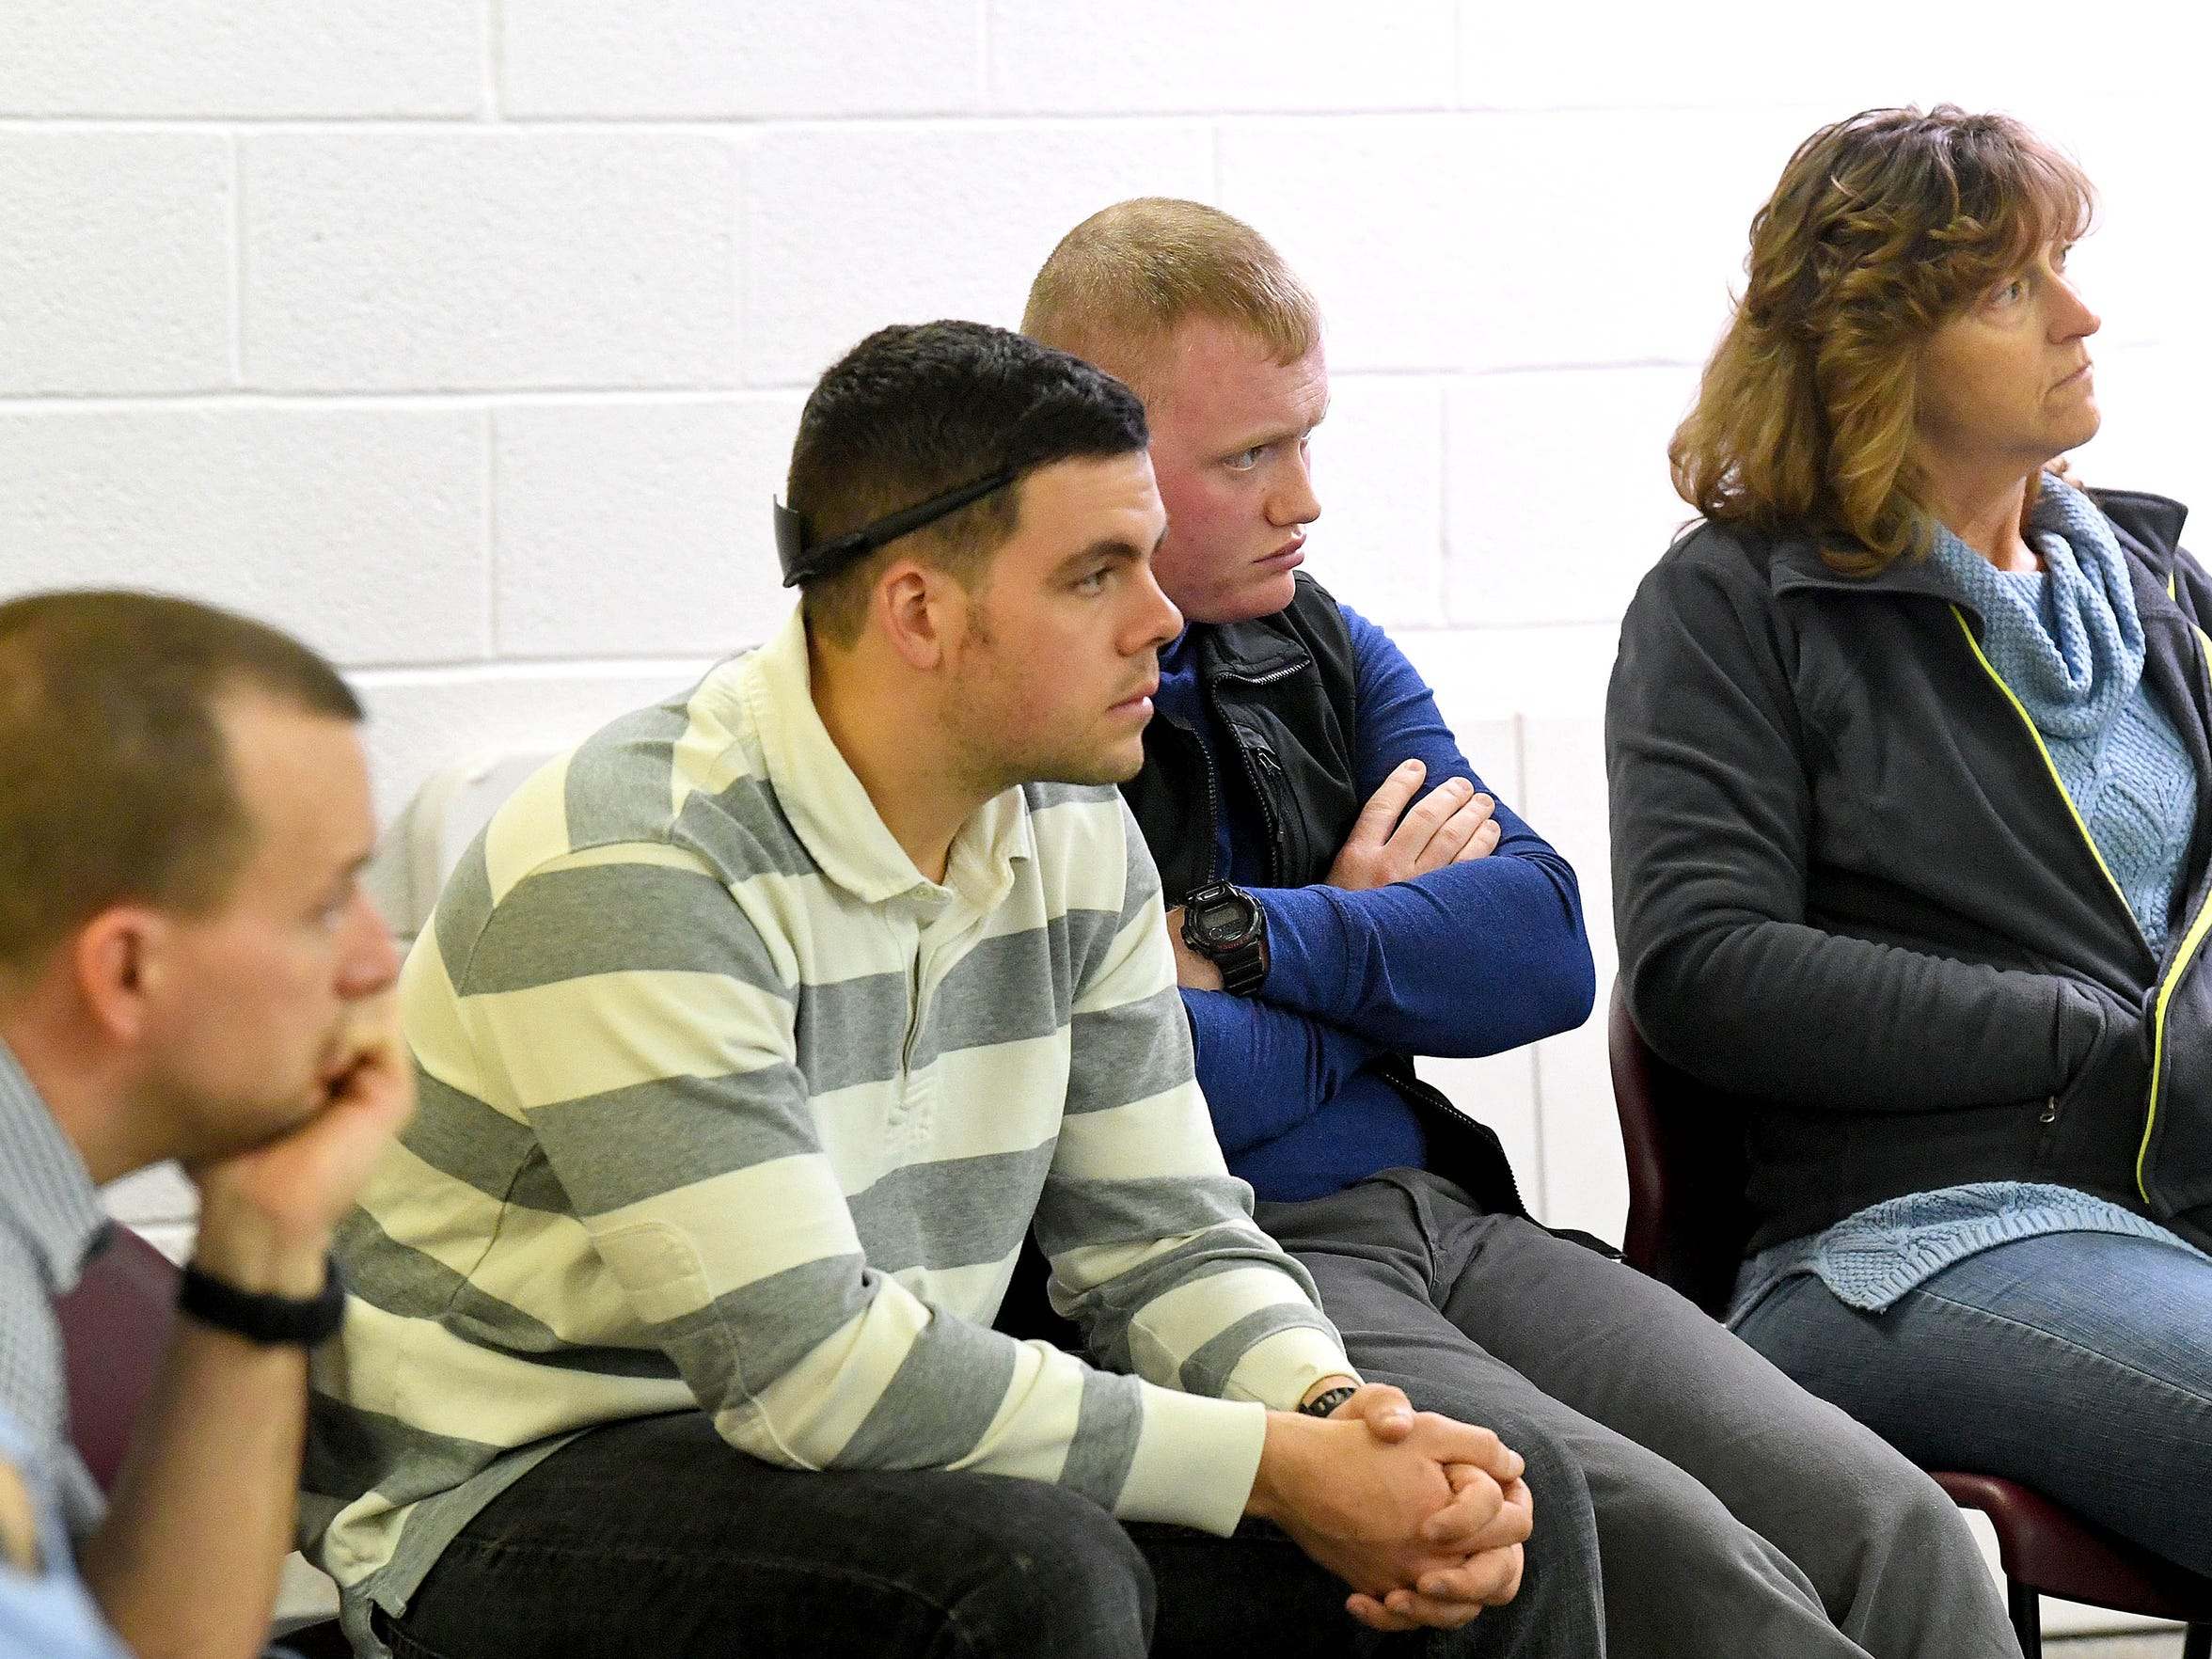 Participants observe as other students try to deescalate various crisis situations as part of roleplaying exercises during Crisis Intervention Team (CIT) training held in Staunton on March 7, 2018.